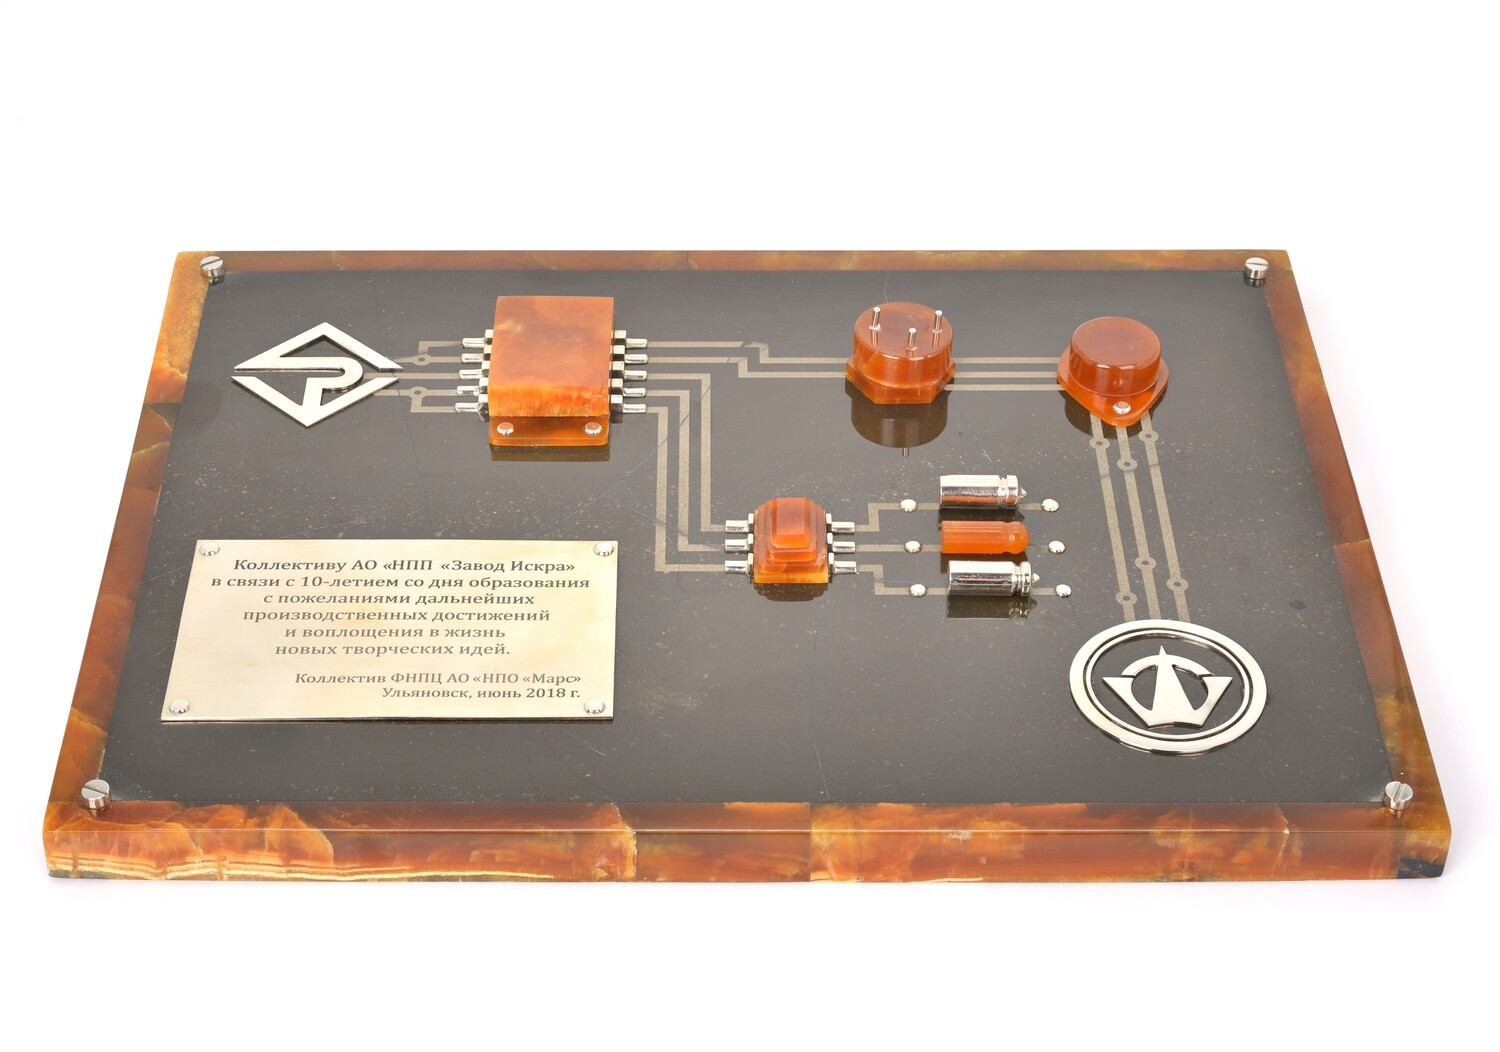 Microcircuit made of stone